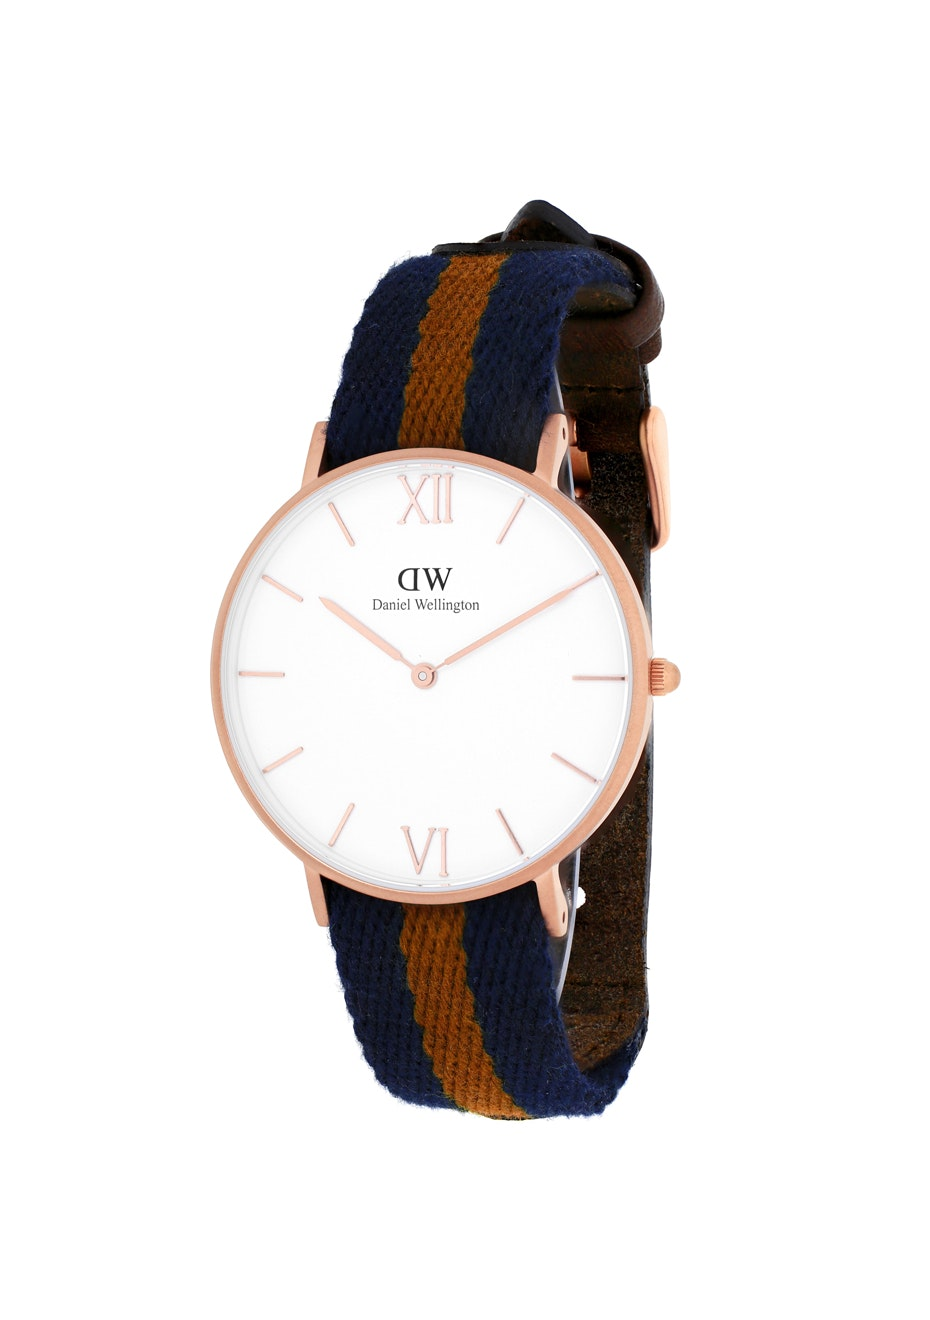 Daniel Wellington Women's Grace Selwyn - White/Two-tone Navy B